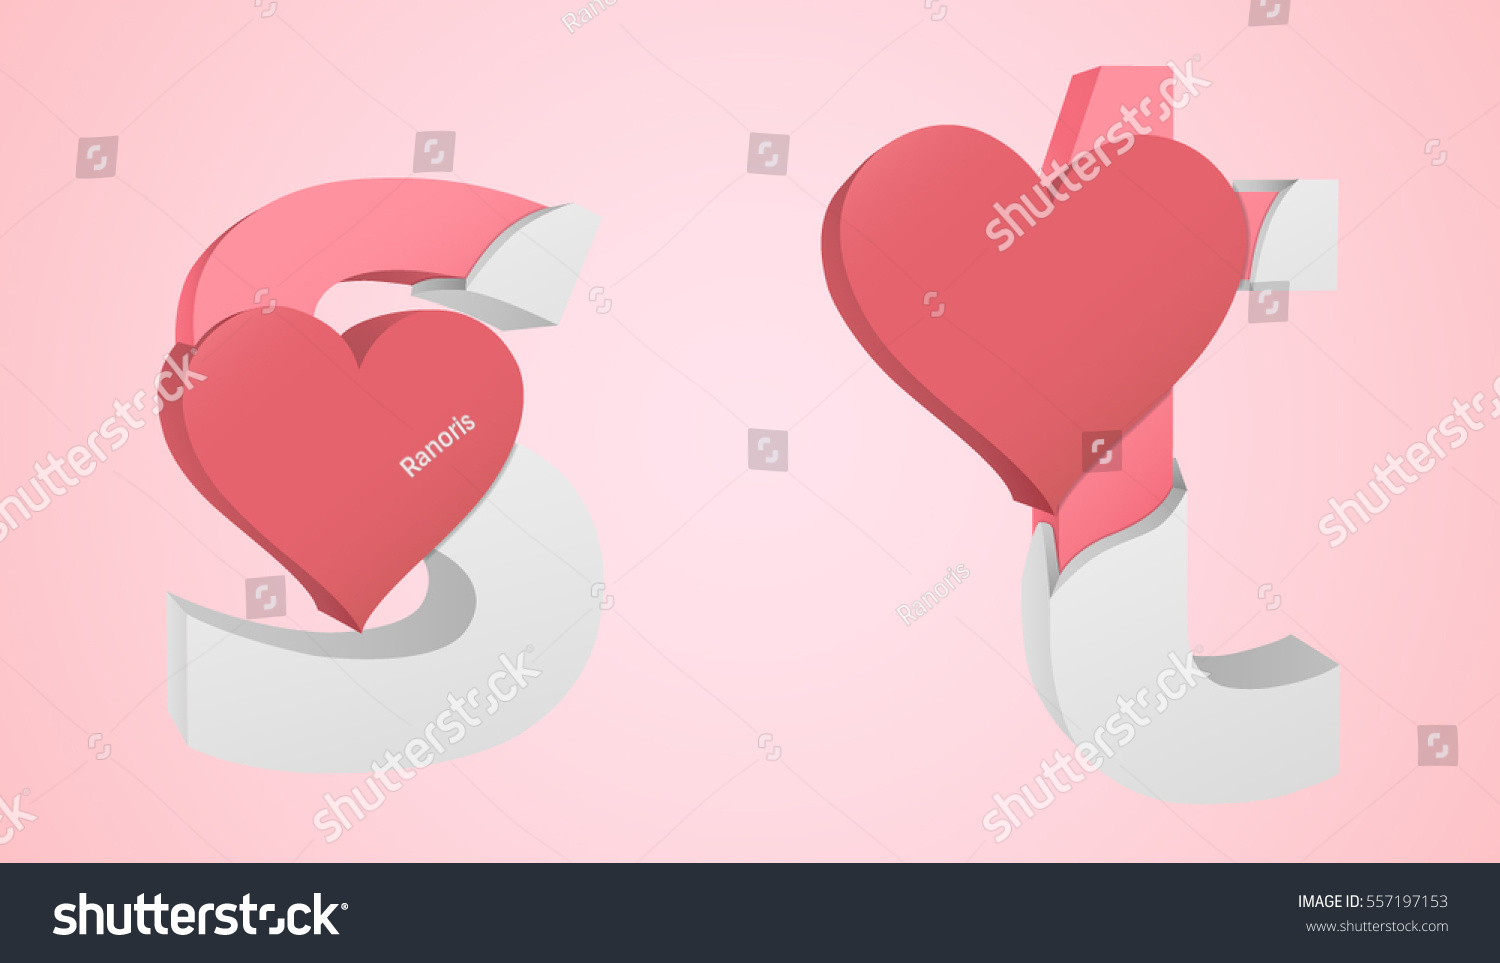 Letters S T Color Pink Inside Stock Vector (Royalty Free) 557197153 ...